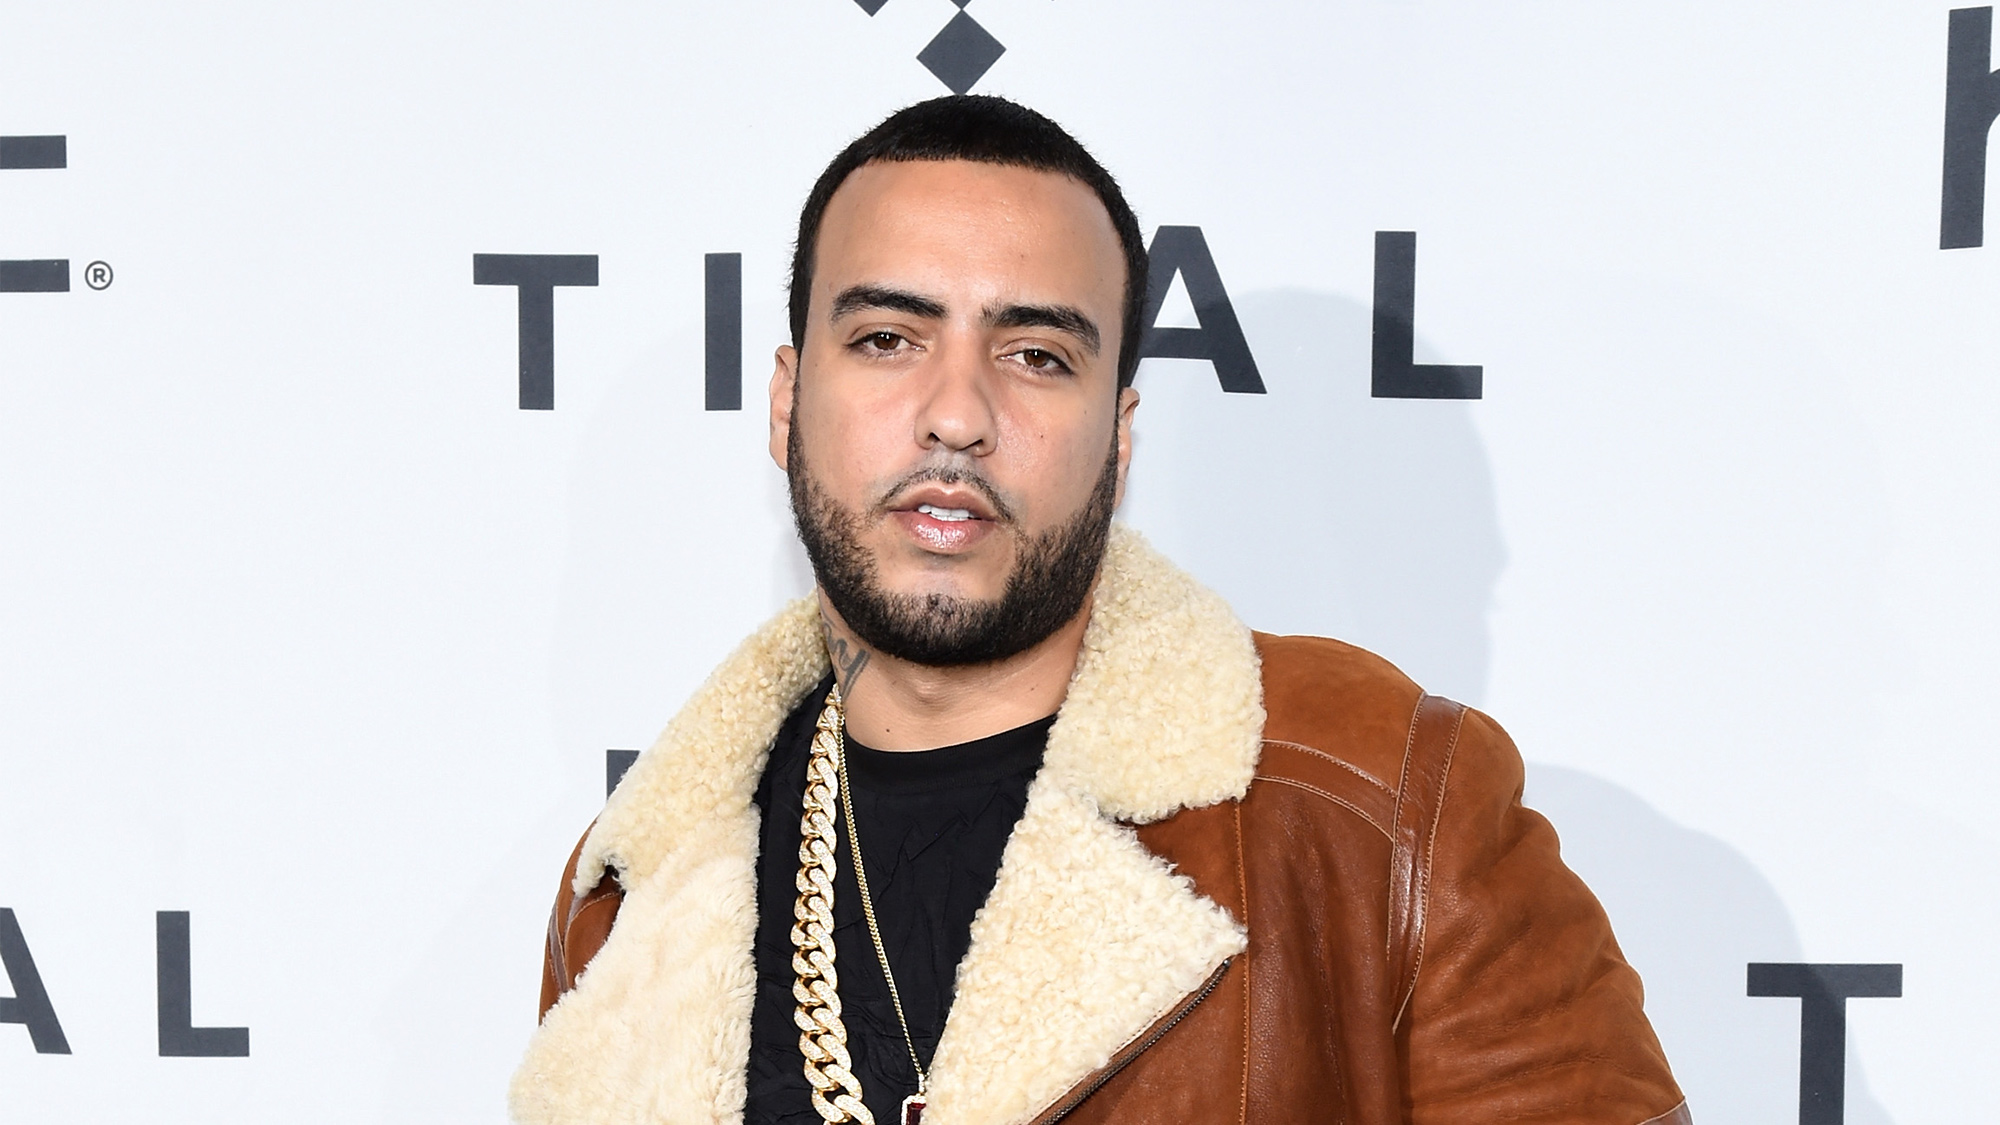 French Montana hospitalized after police respond to false alarm at his home: report